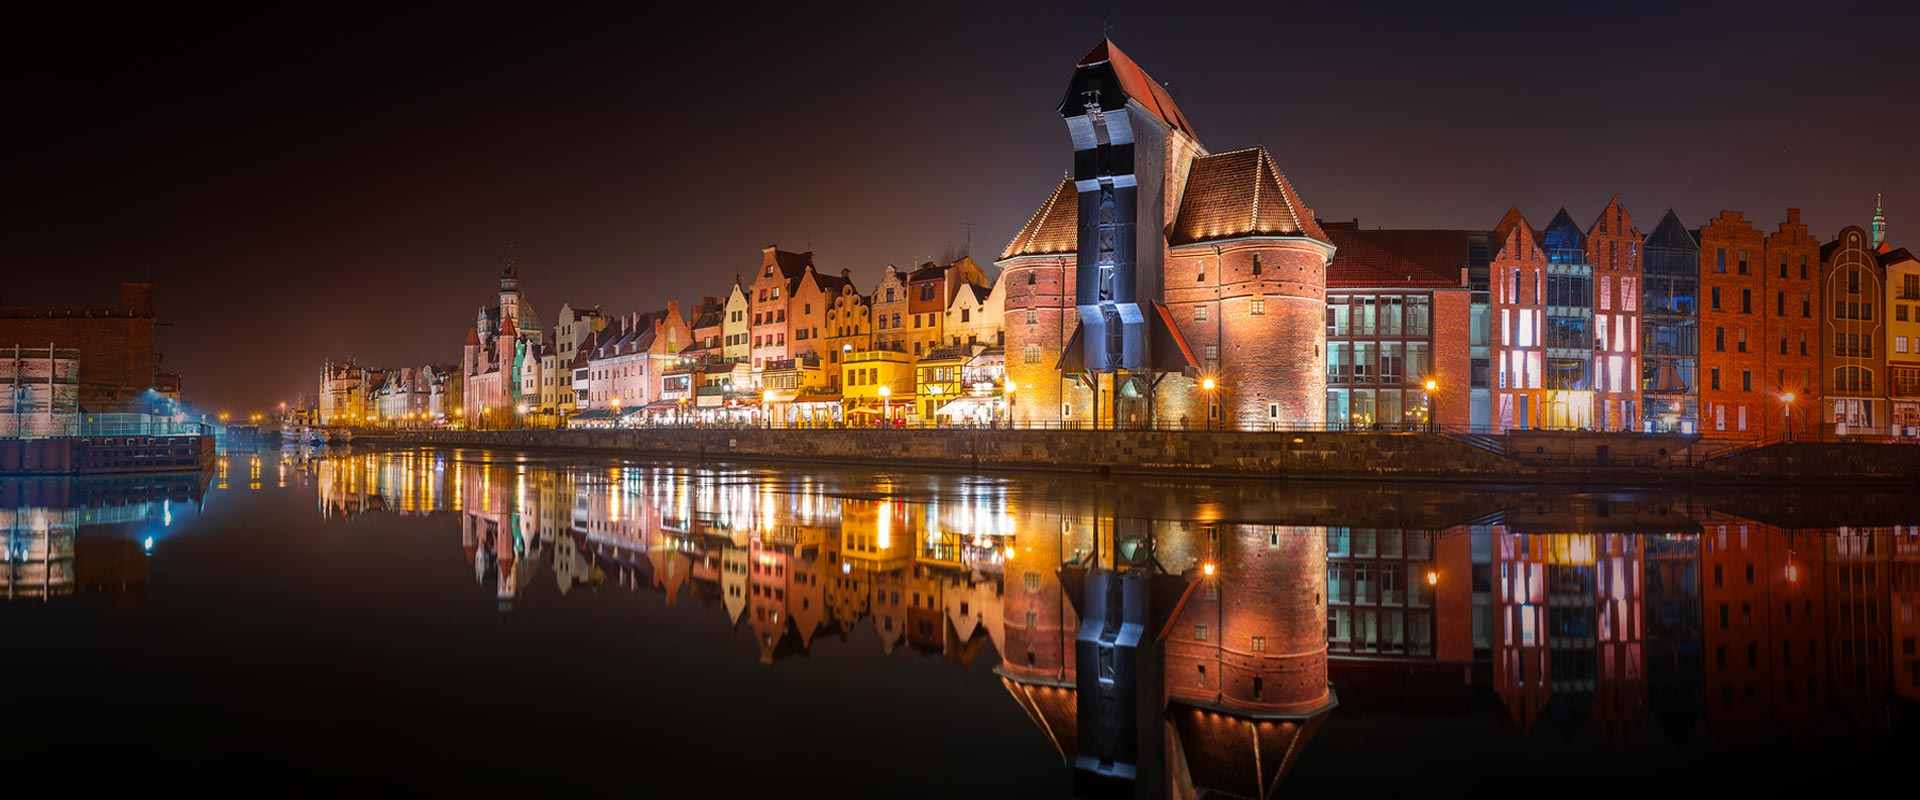 Best Shopping Sites >> What To Do In Gdansk - Best of Gdansk Attractions And ...